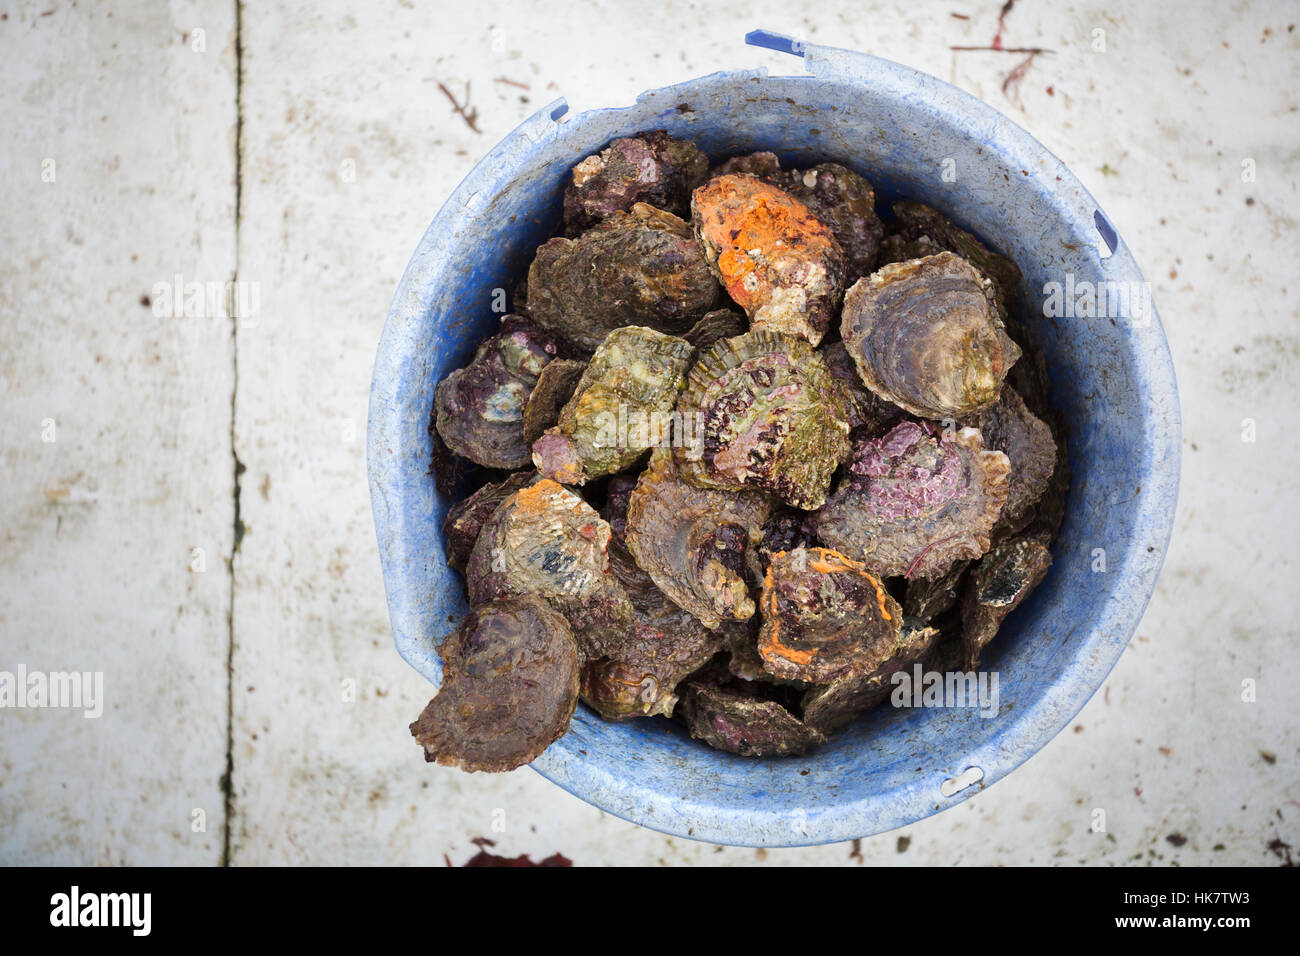 Traditional Sustainable Oyster Fishing, River Fal. A bucket full of shells. - Stock Image